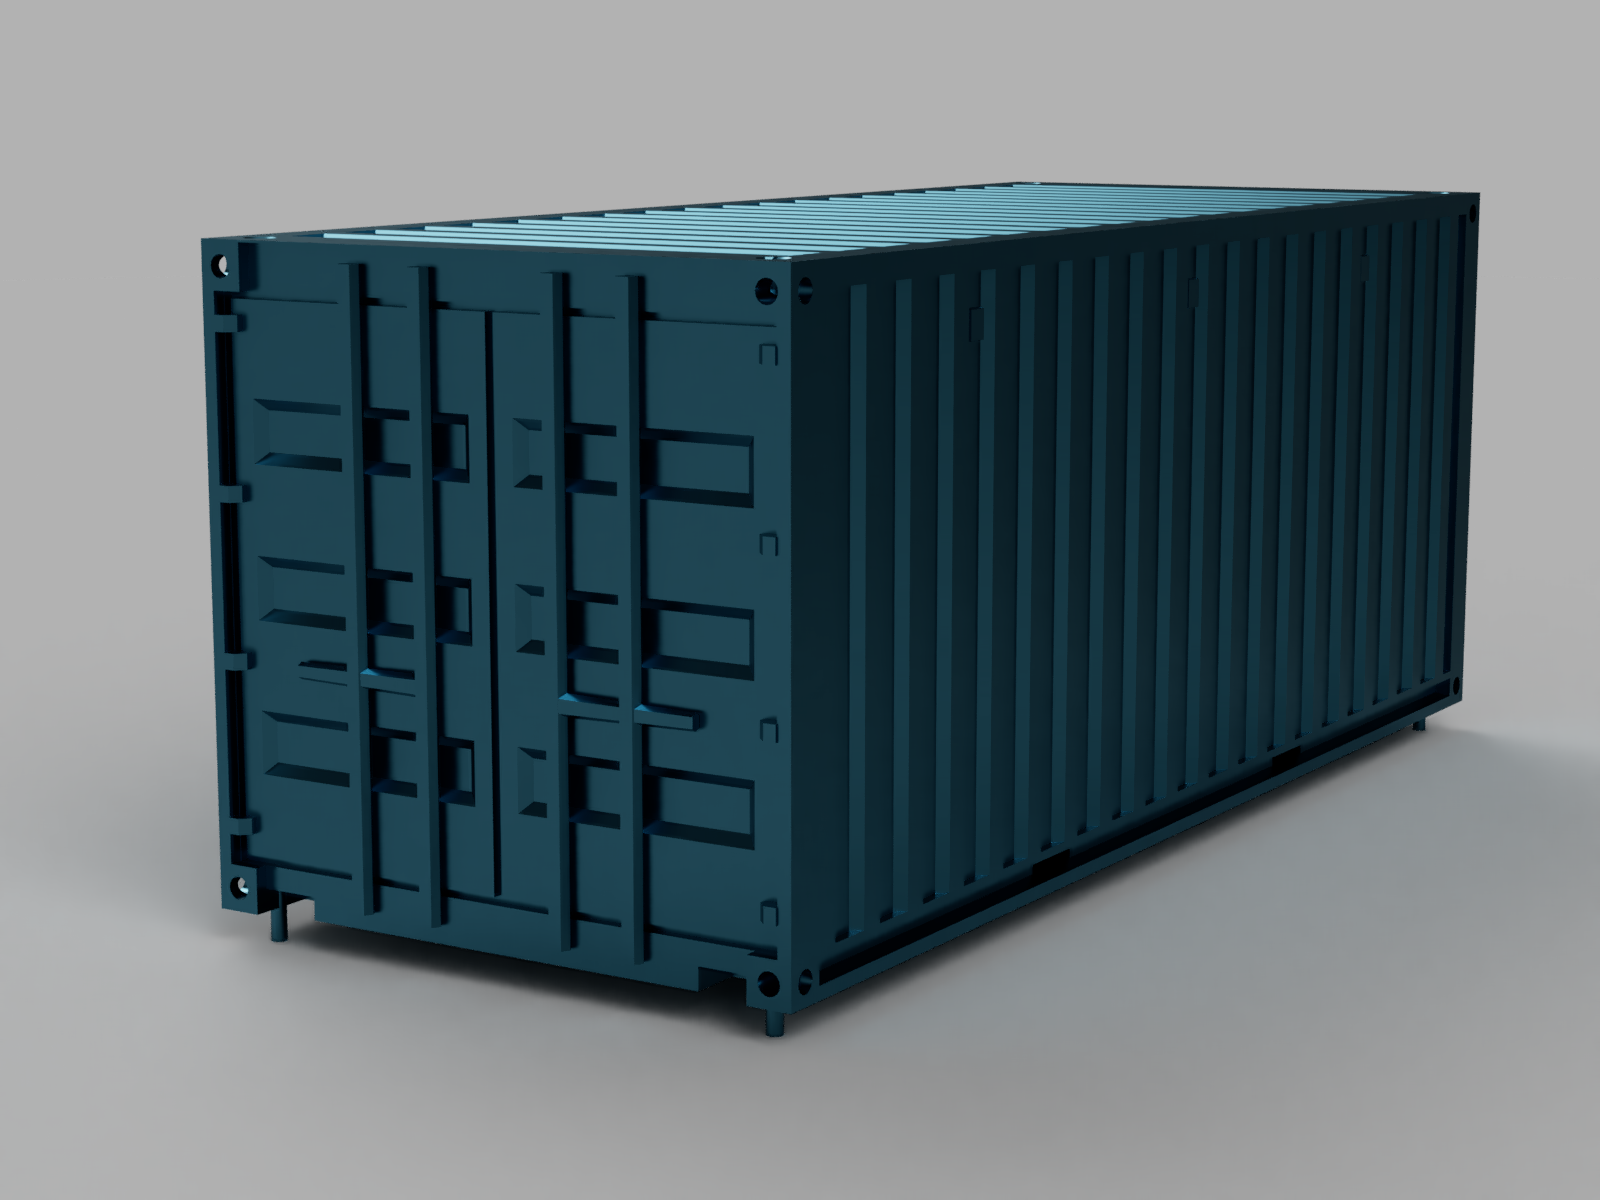 container_orig_2019-Jul-18_01-09-54PM-000_CustomizedView17773157190.png Download free STL file HO scale container 20ft (piko-compatible) • 3D print object, positron